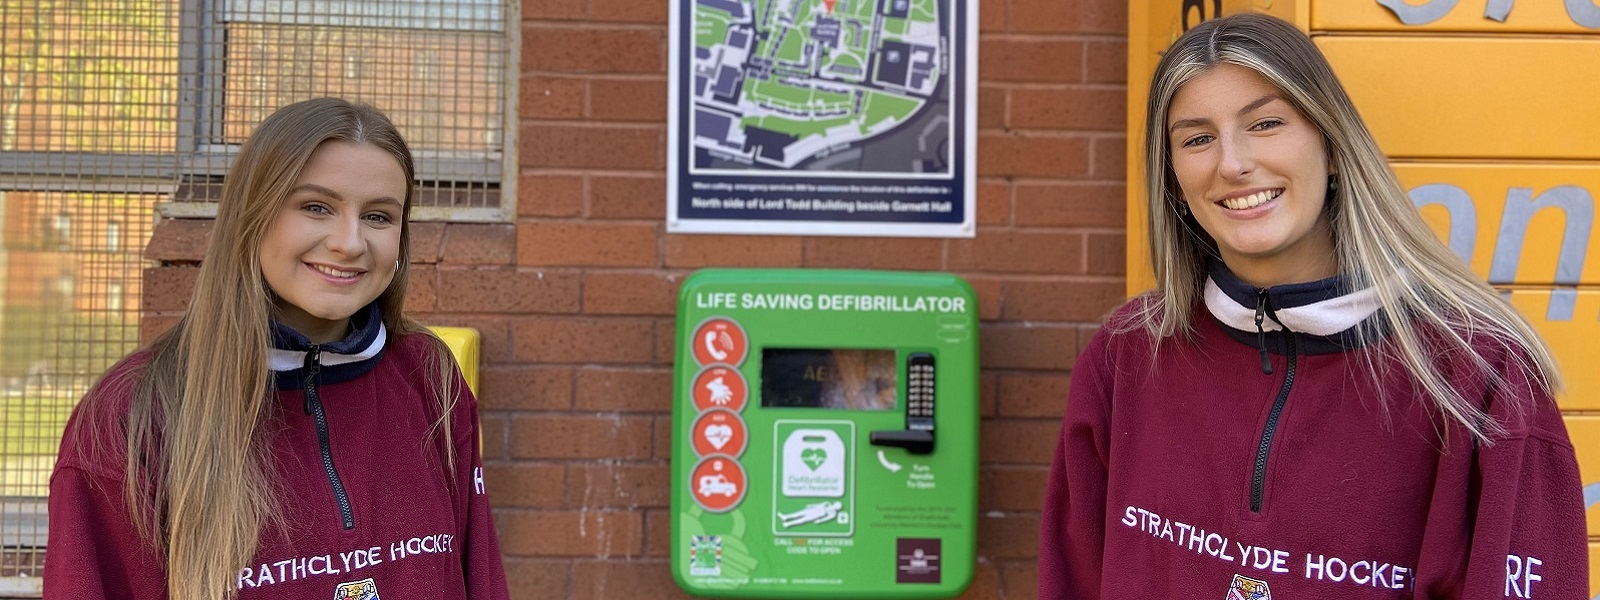 Students Helena Tipper and Rebecca Flett with the new AED.